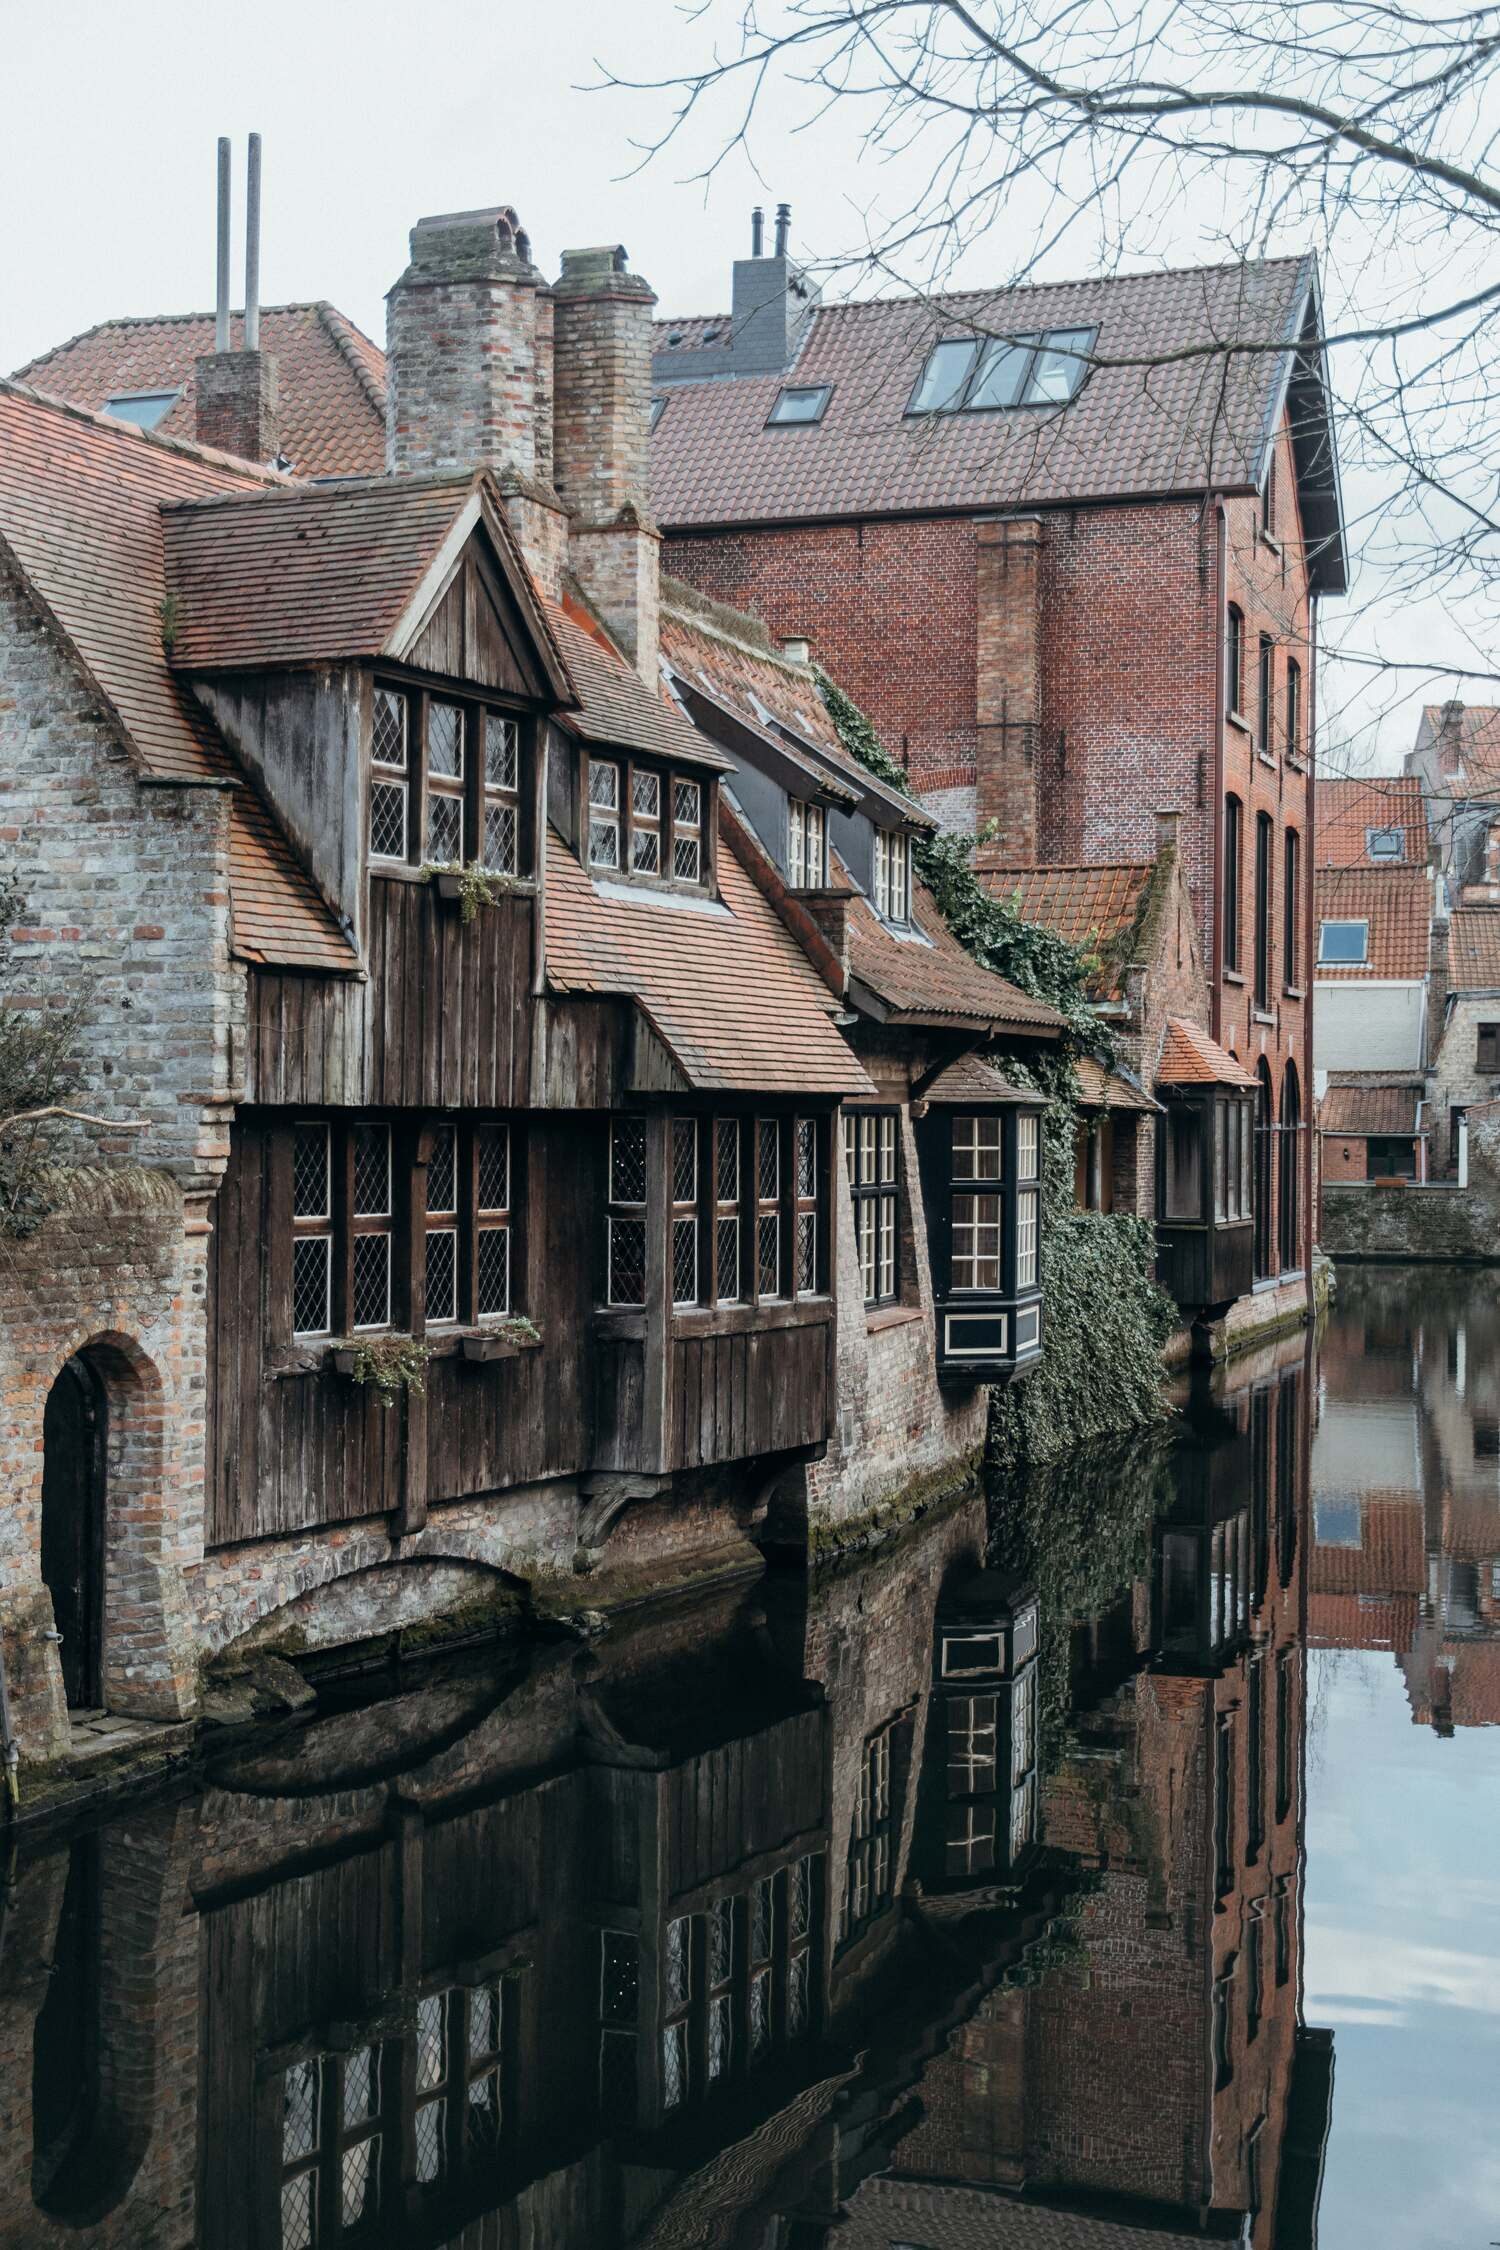 A Bruges hotel view at Bonifacius Brug one of the most famous and must see spots in Bruges